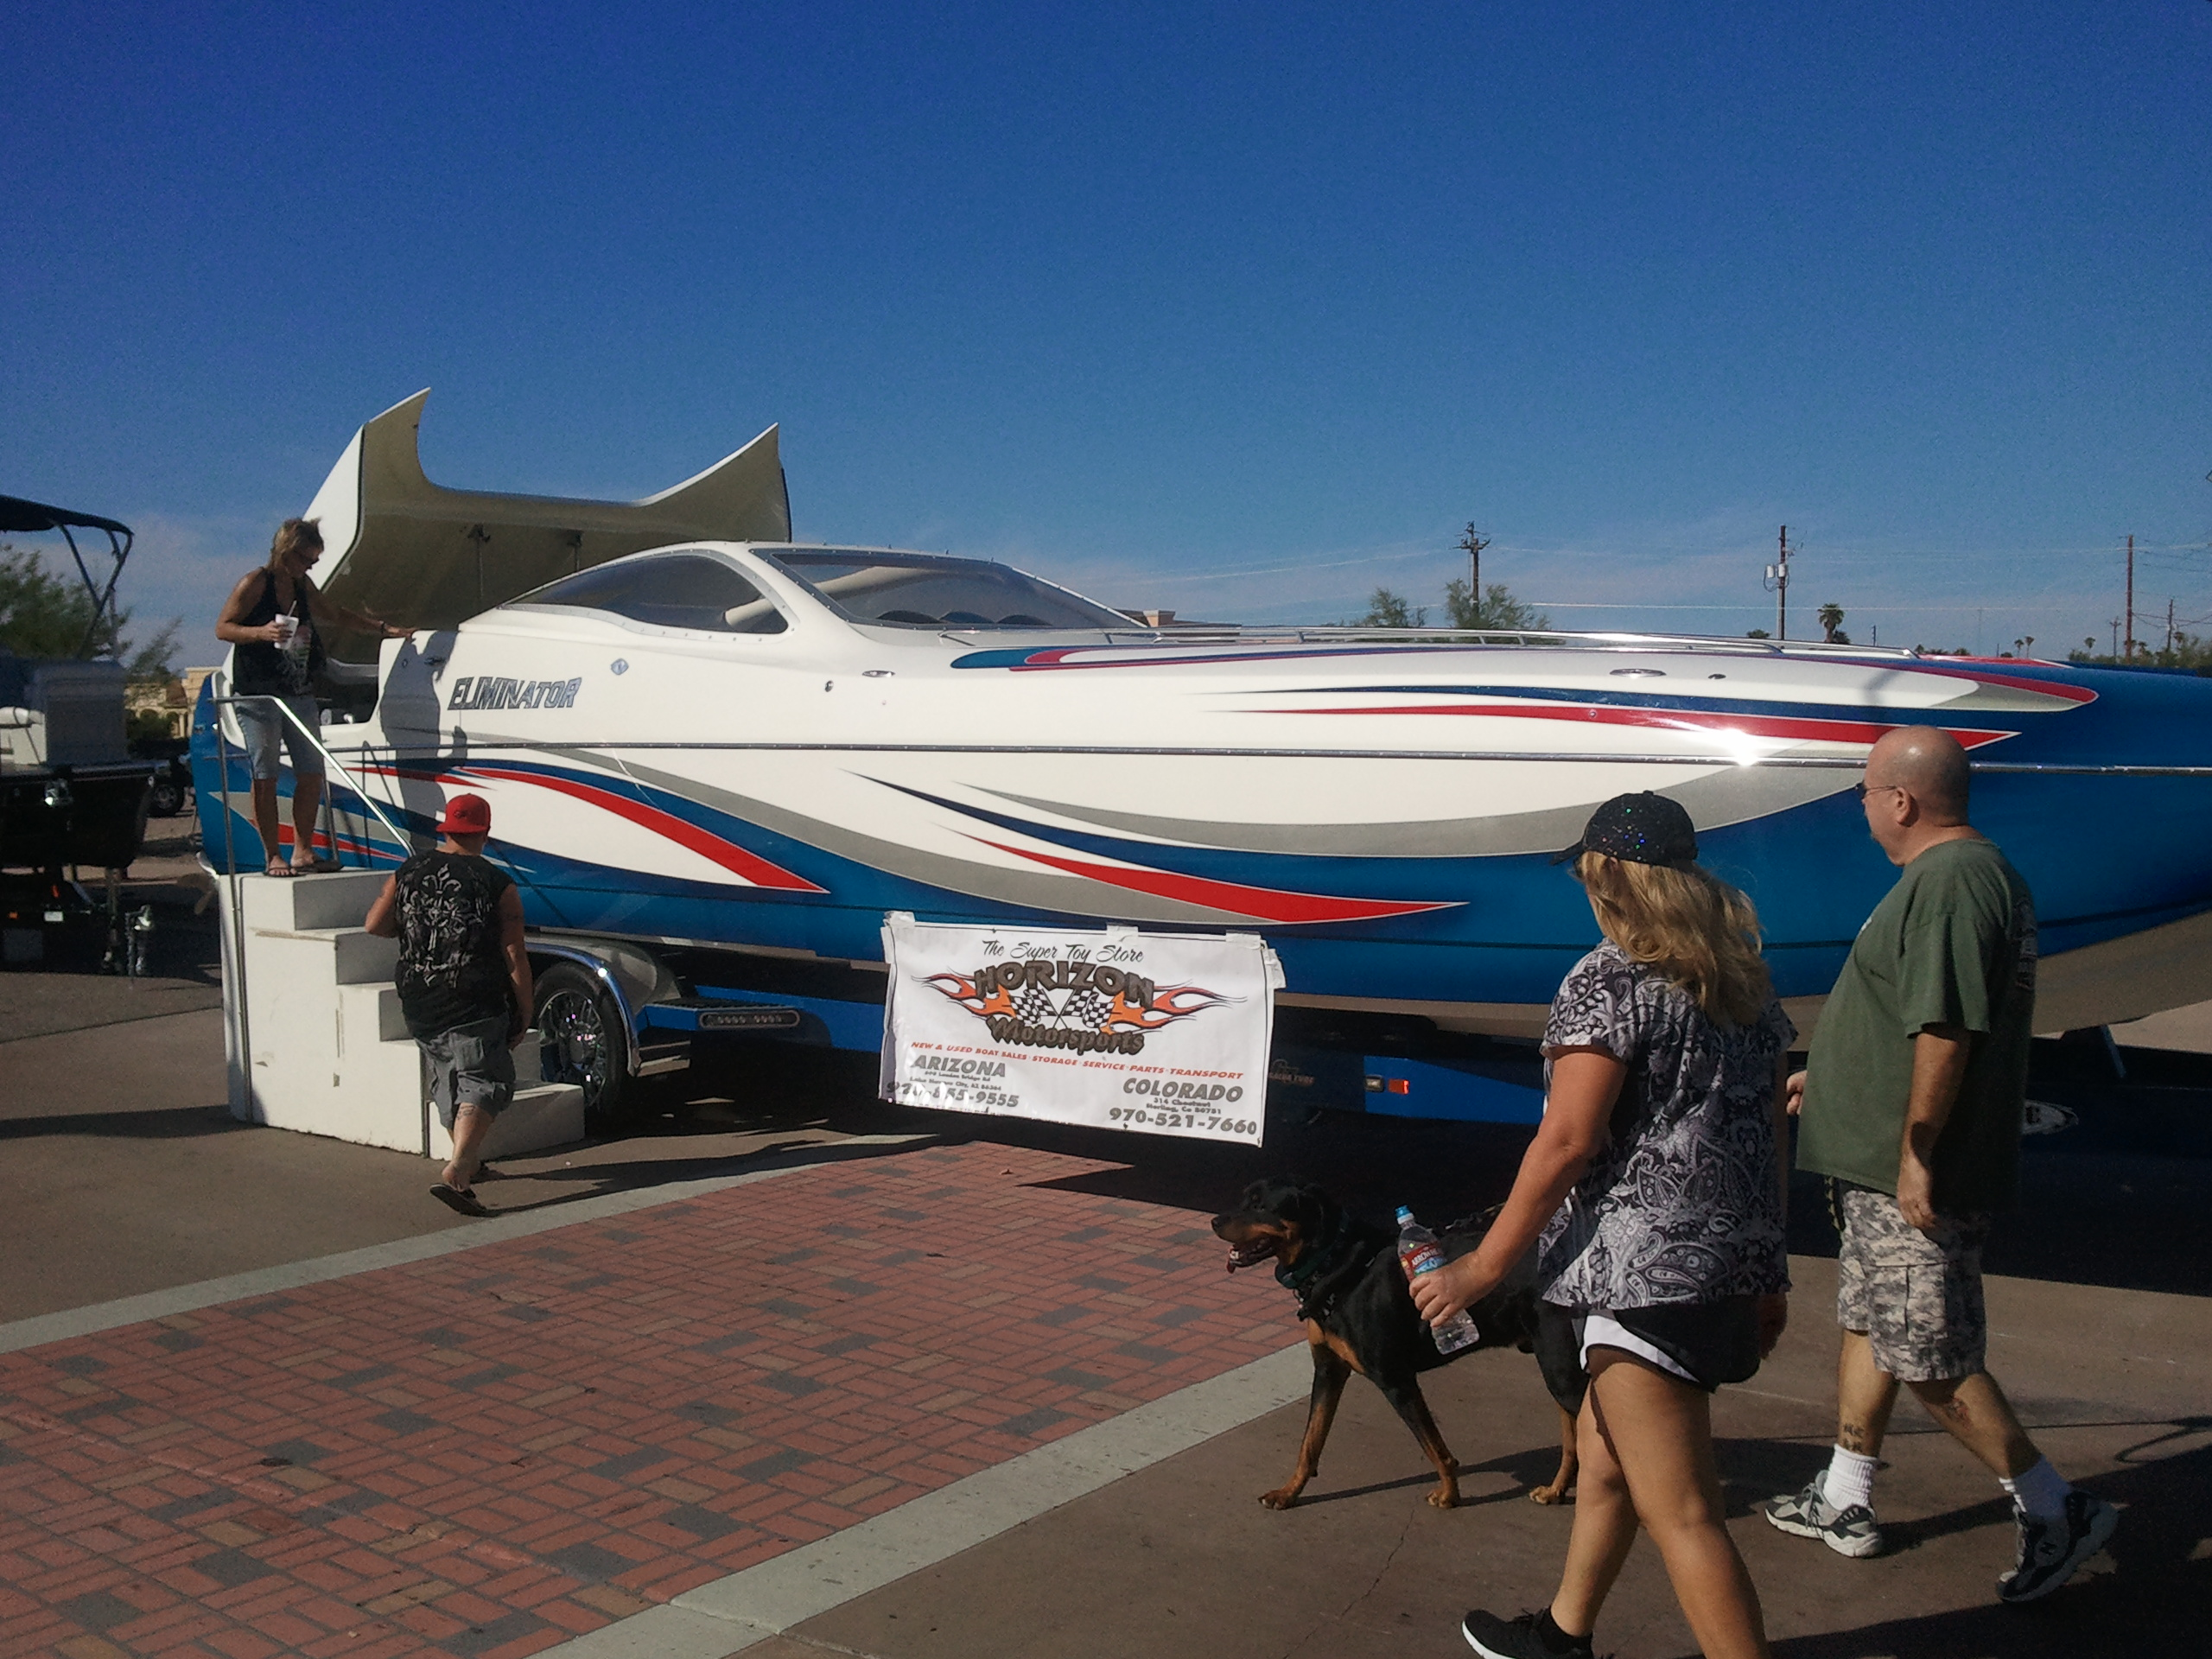 Big Boys Toys on Main lake havasu